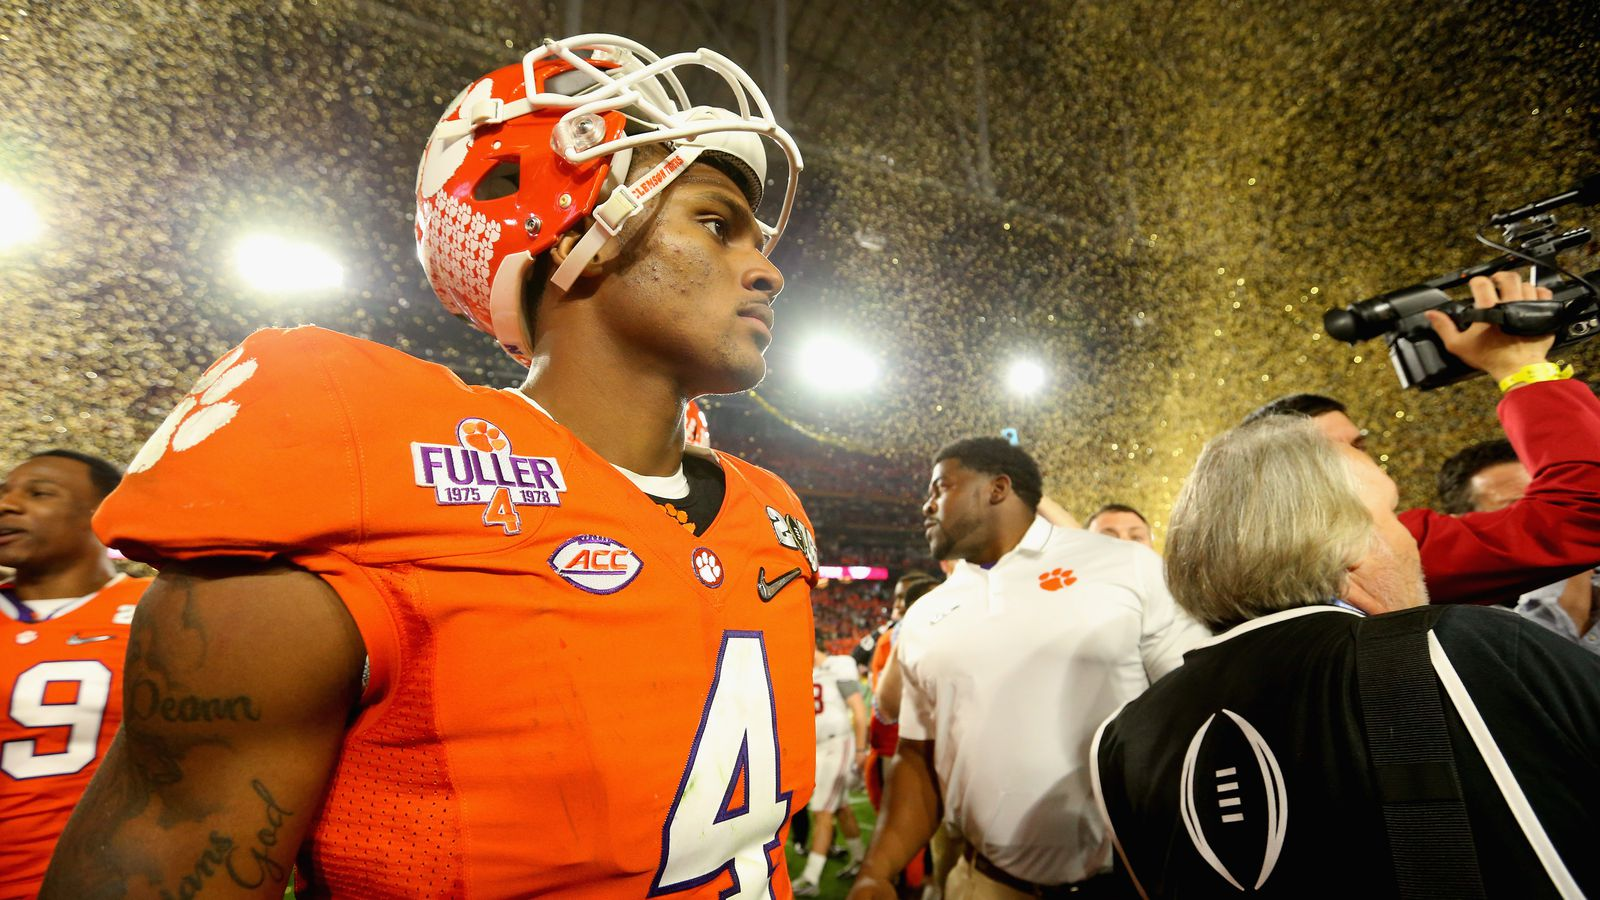 fab025db9 ... purple 1975 1978 fuller stitched youth ncaa jersey deshaun watson is  officially a megastar after his